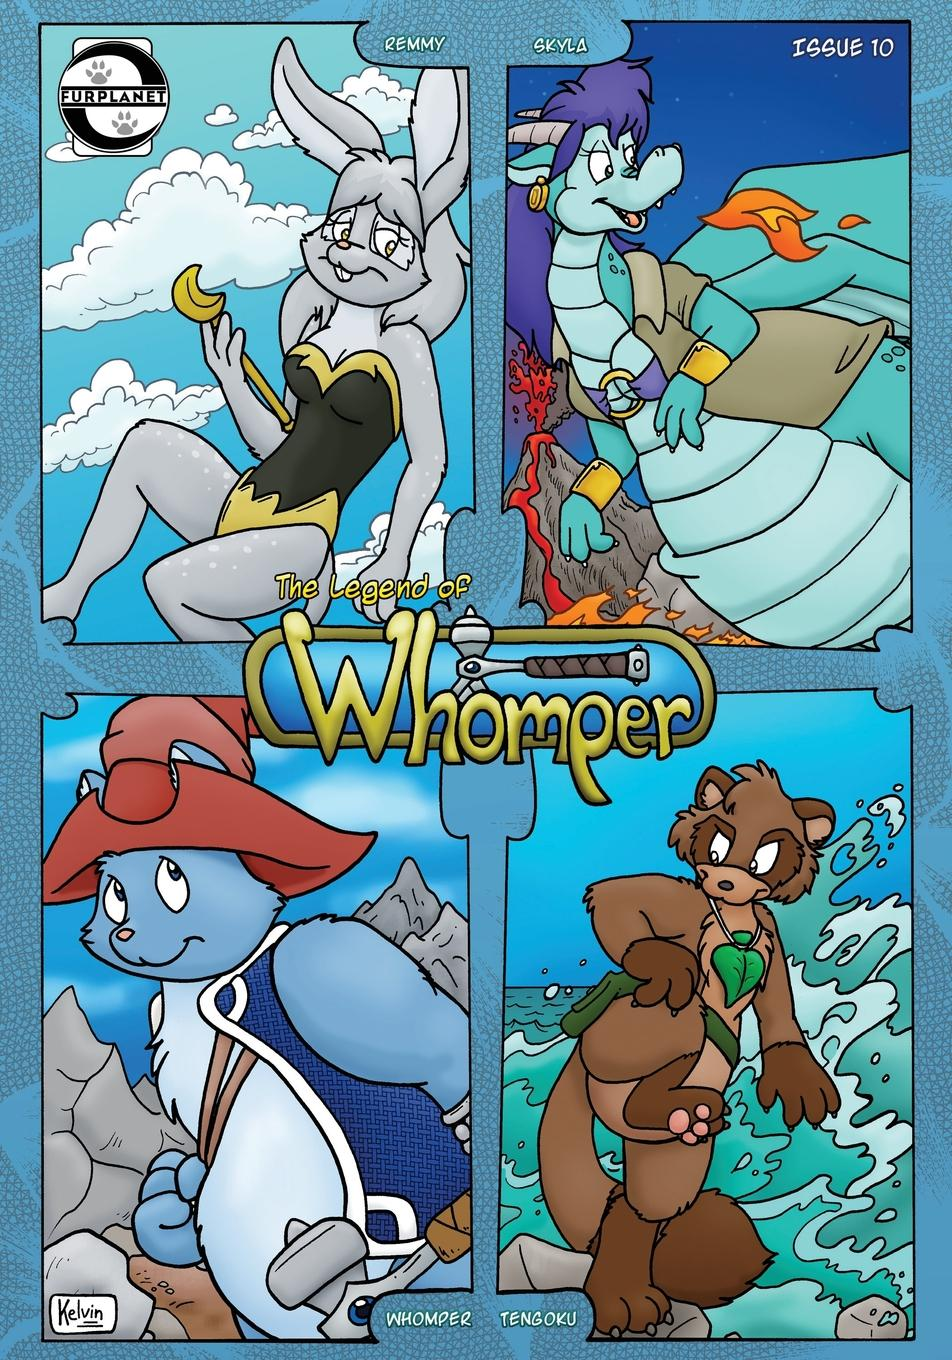 Whomper Vol 2, Issue 10